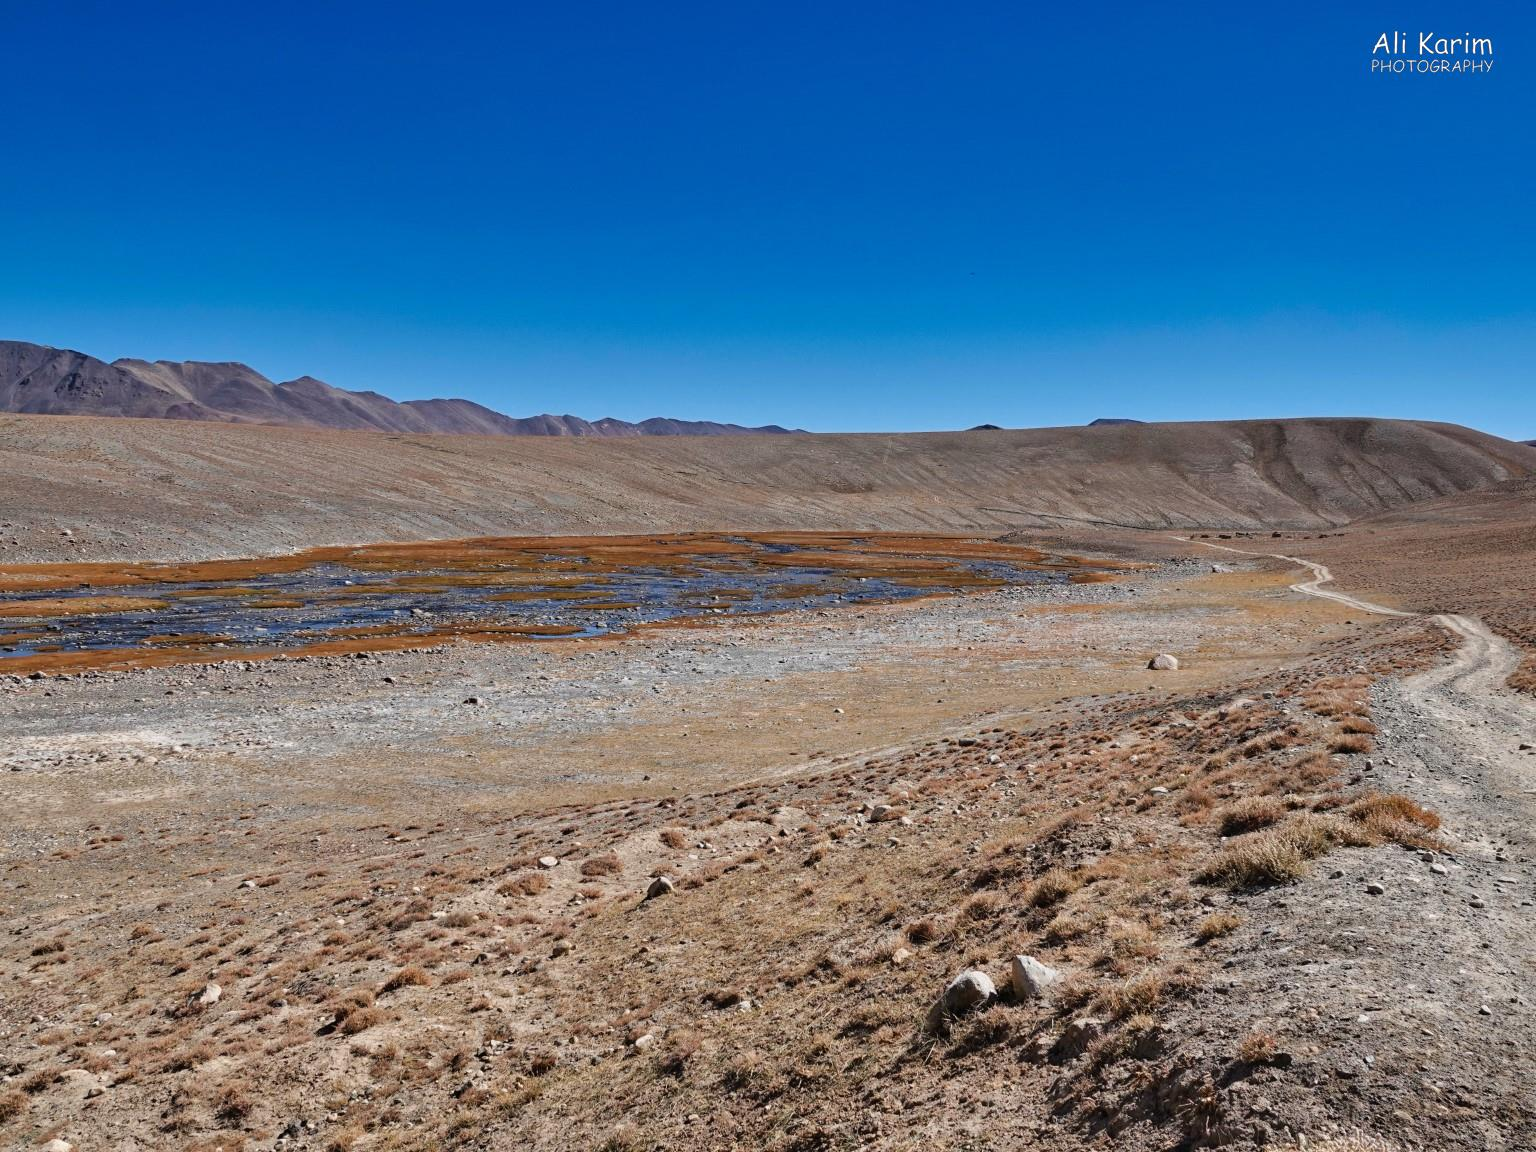 More Murghab & Alichur, Tajikistan, Infrequent sightings of water in a basin